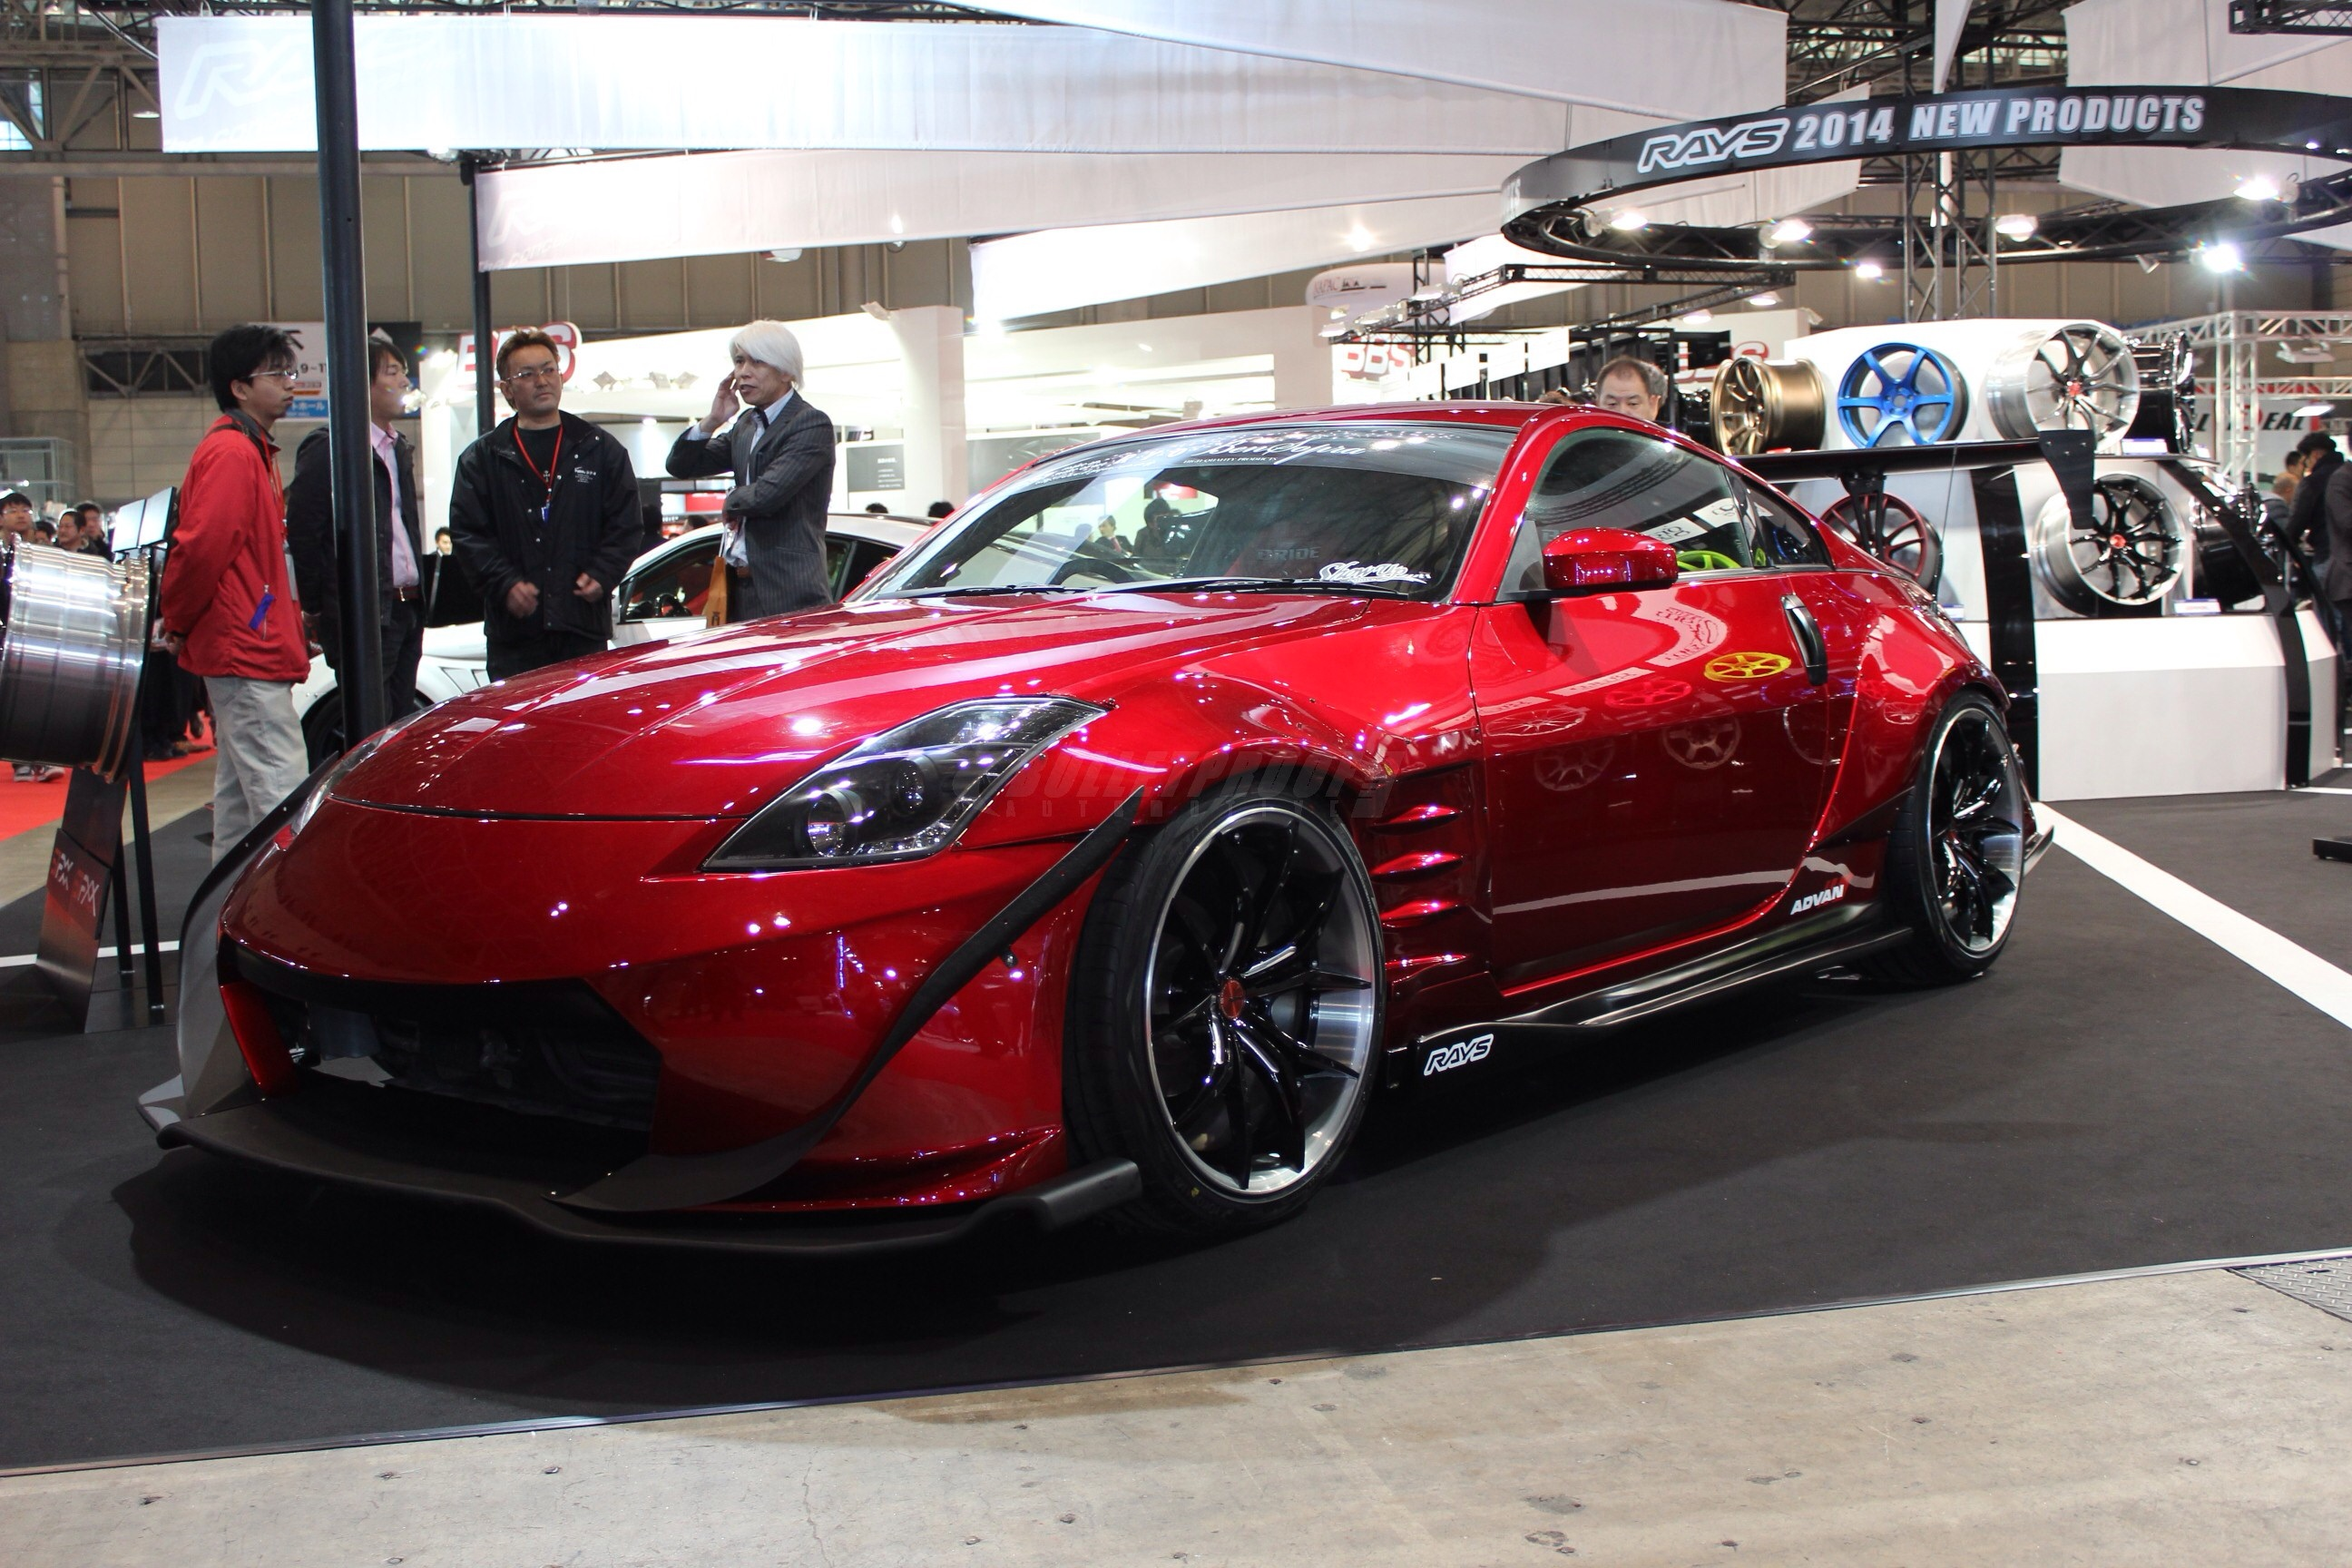 Bensopra Body kit for the Nissan Z33 350Z